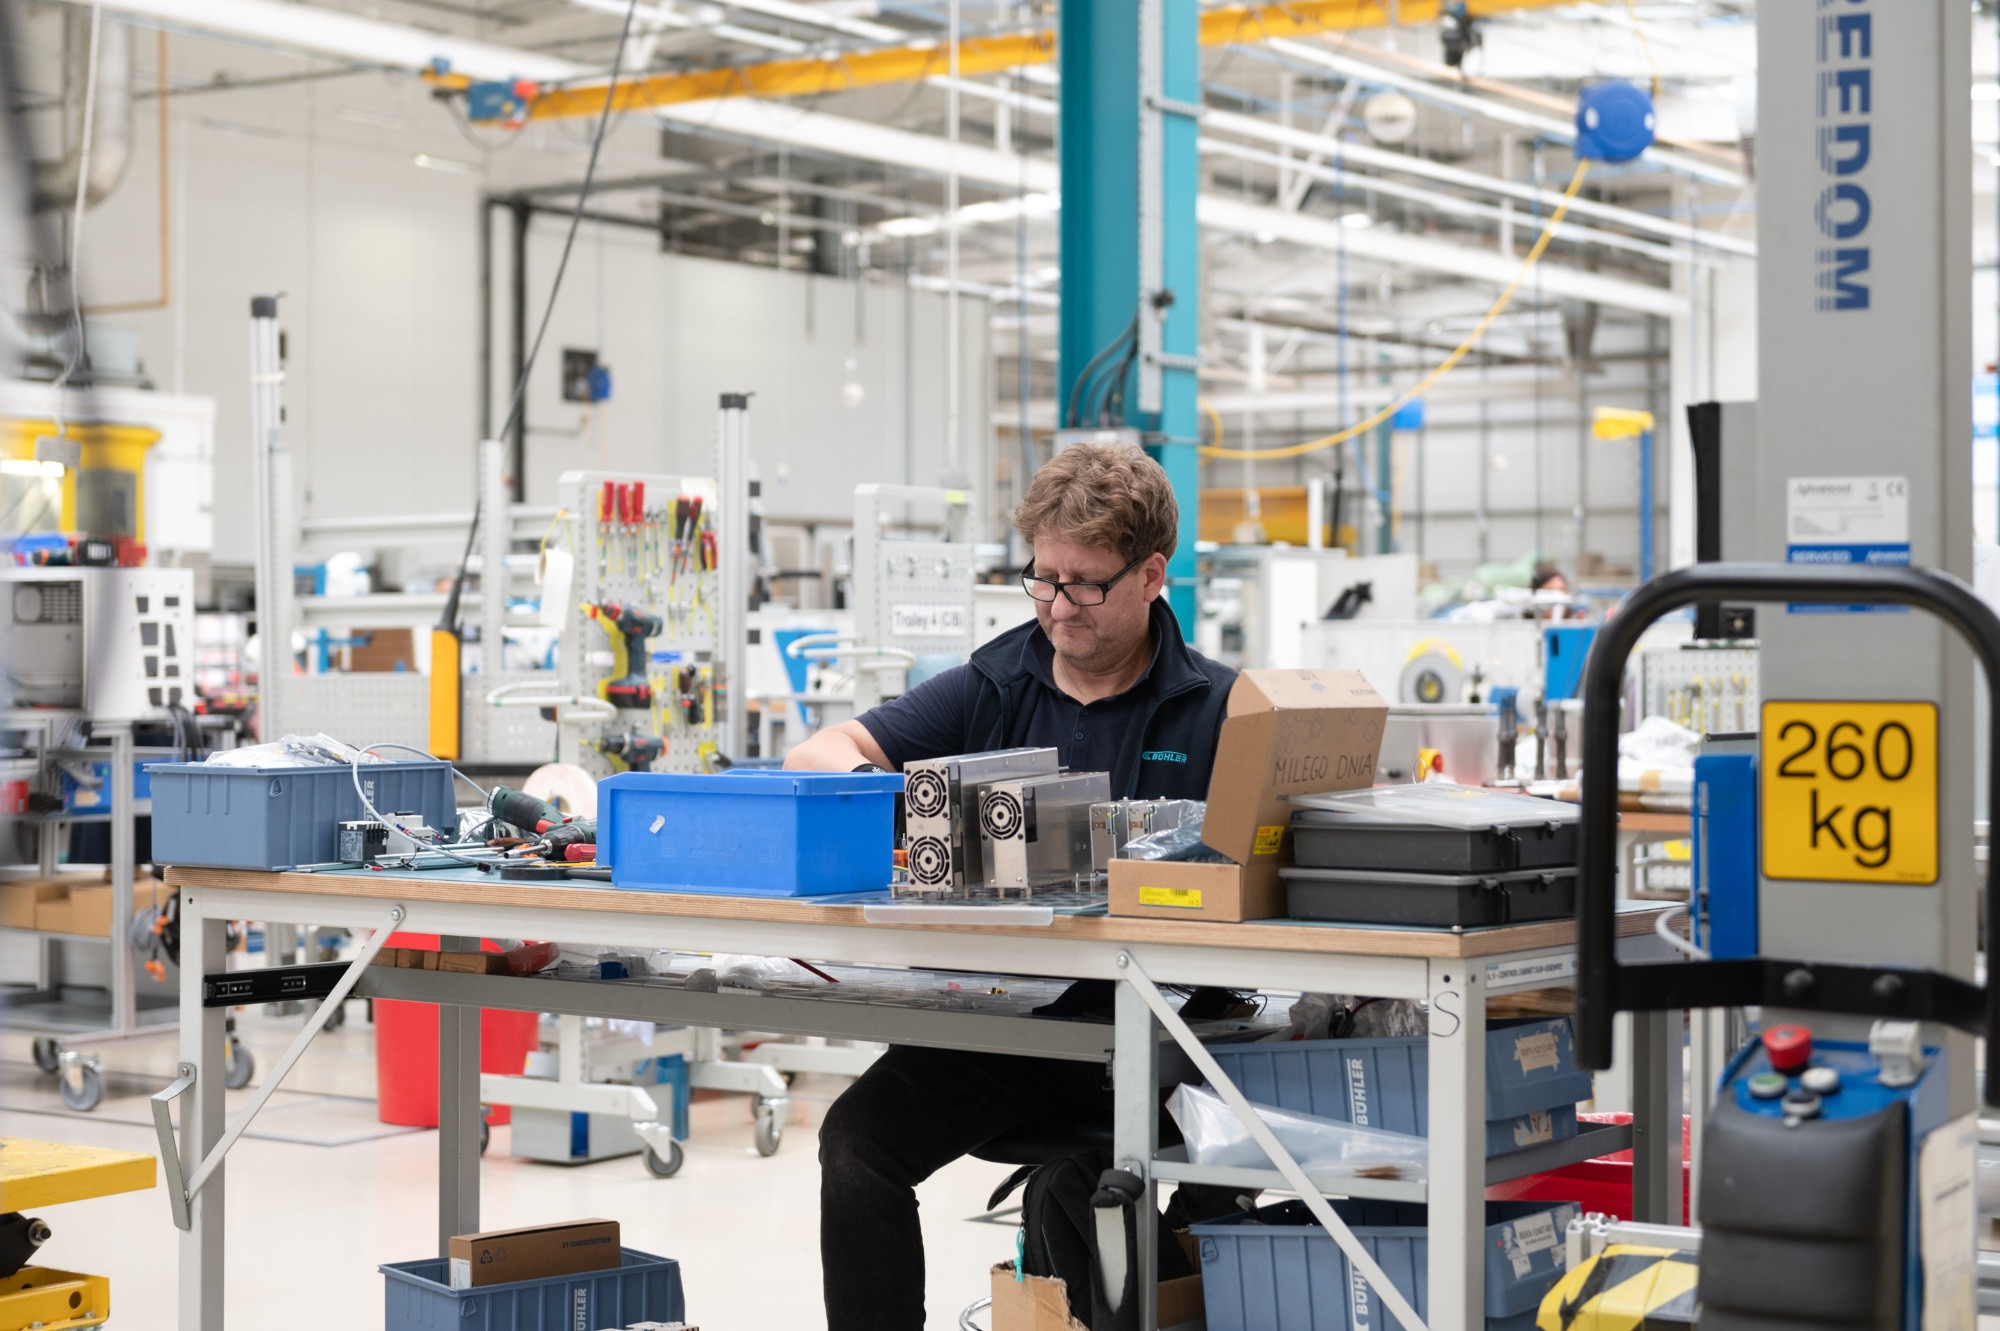 Buhler in the Royal Docks, man at a desk in a large industrial space